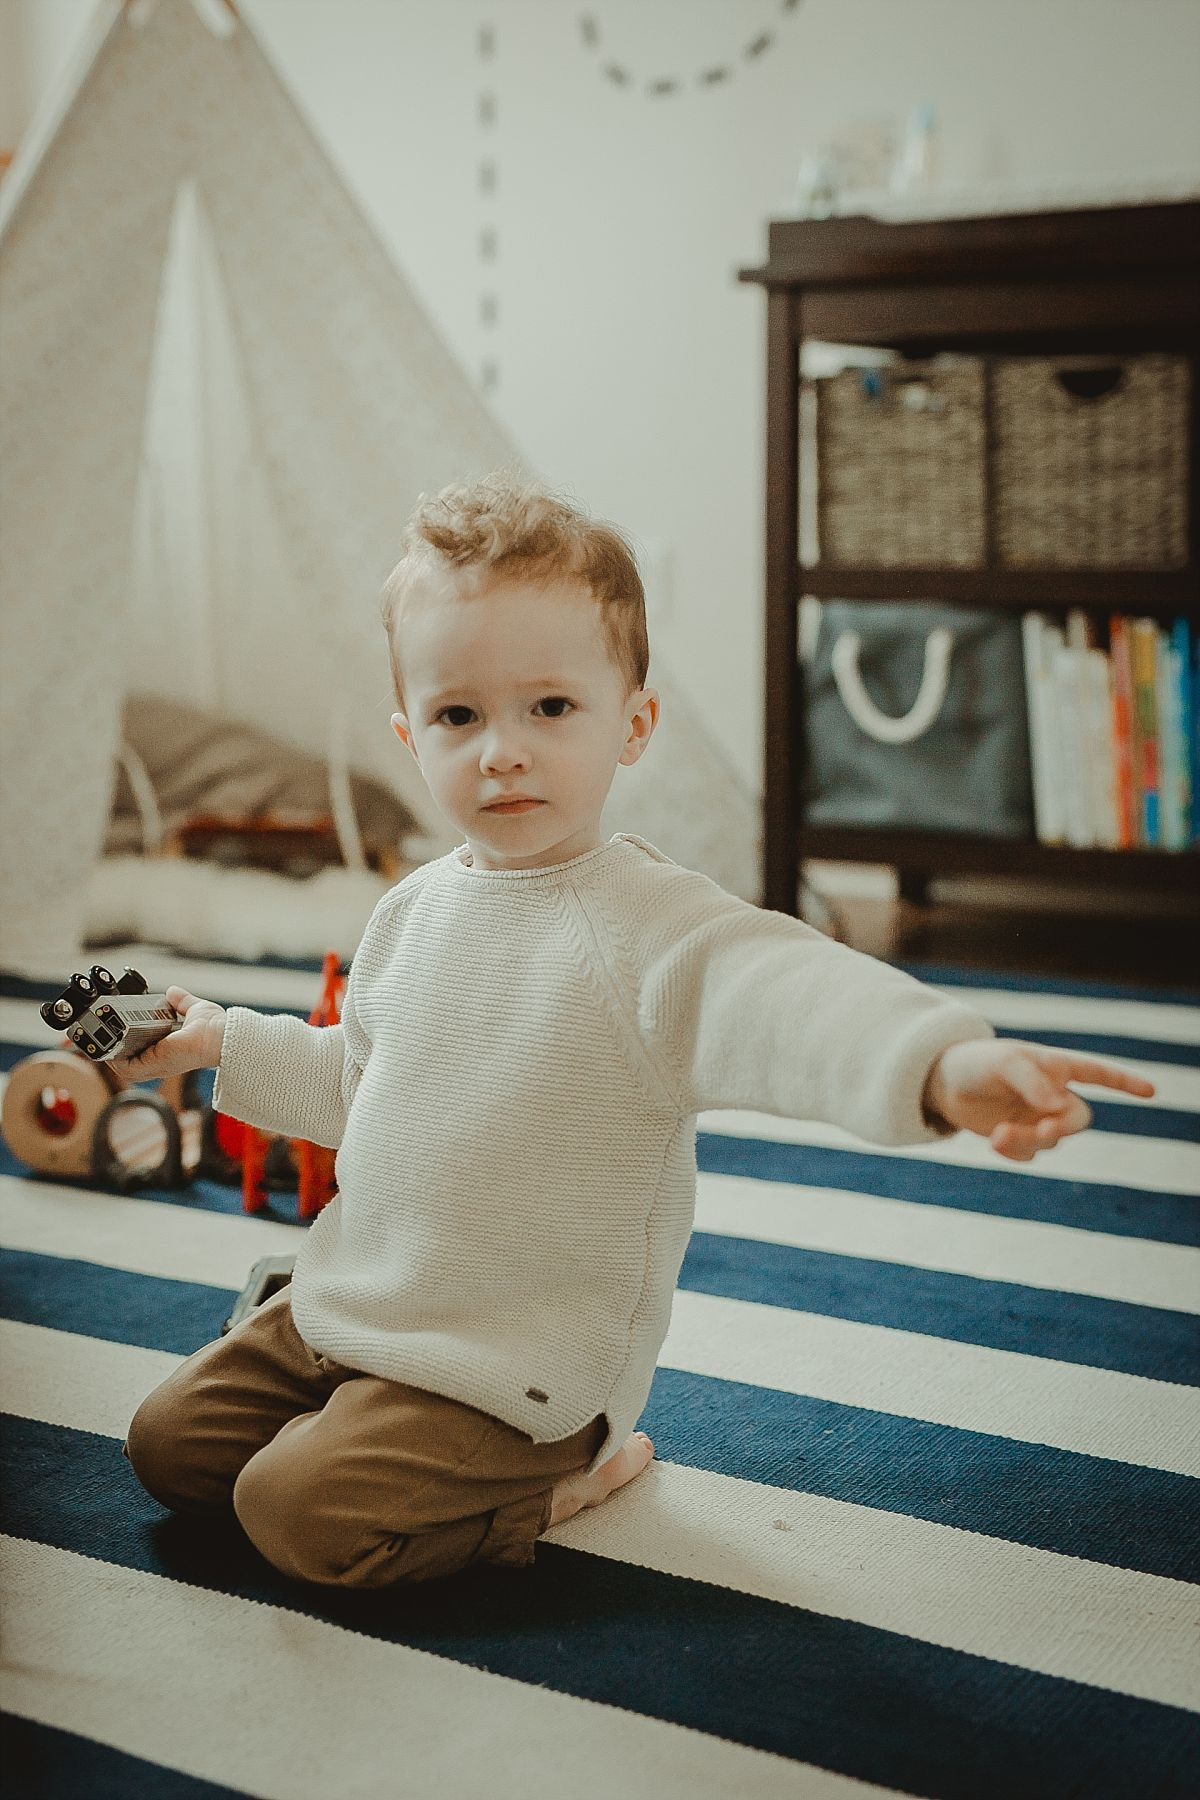 candid portrait of toddler sitting on striped rug and holding a train. photo by nyc family photographer krystil mcdowall